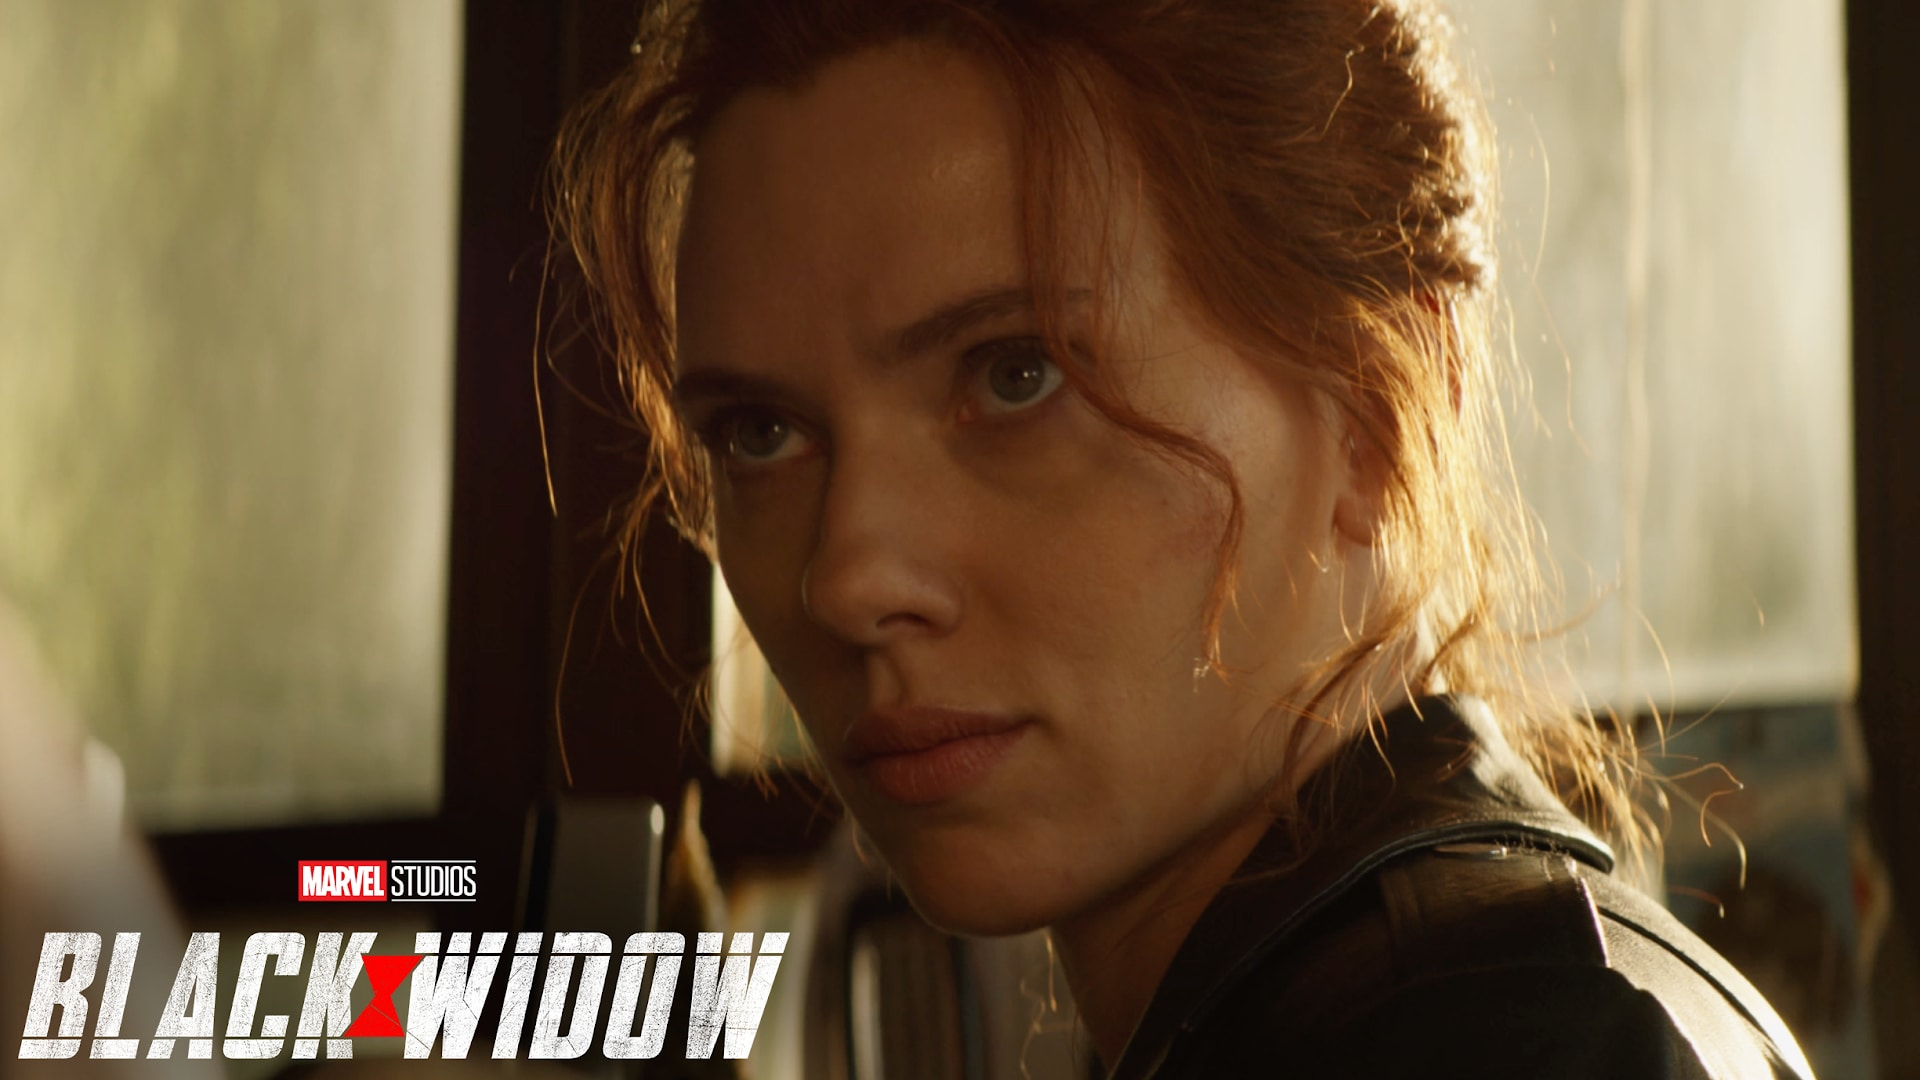 Marvel Studios' Black Widow – Brand New Special Look!